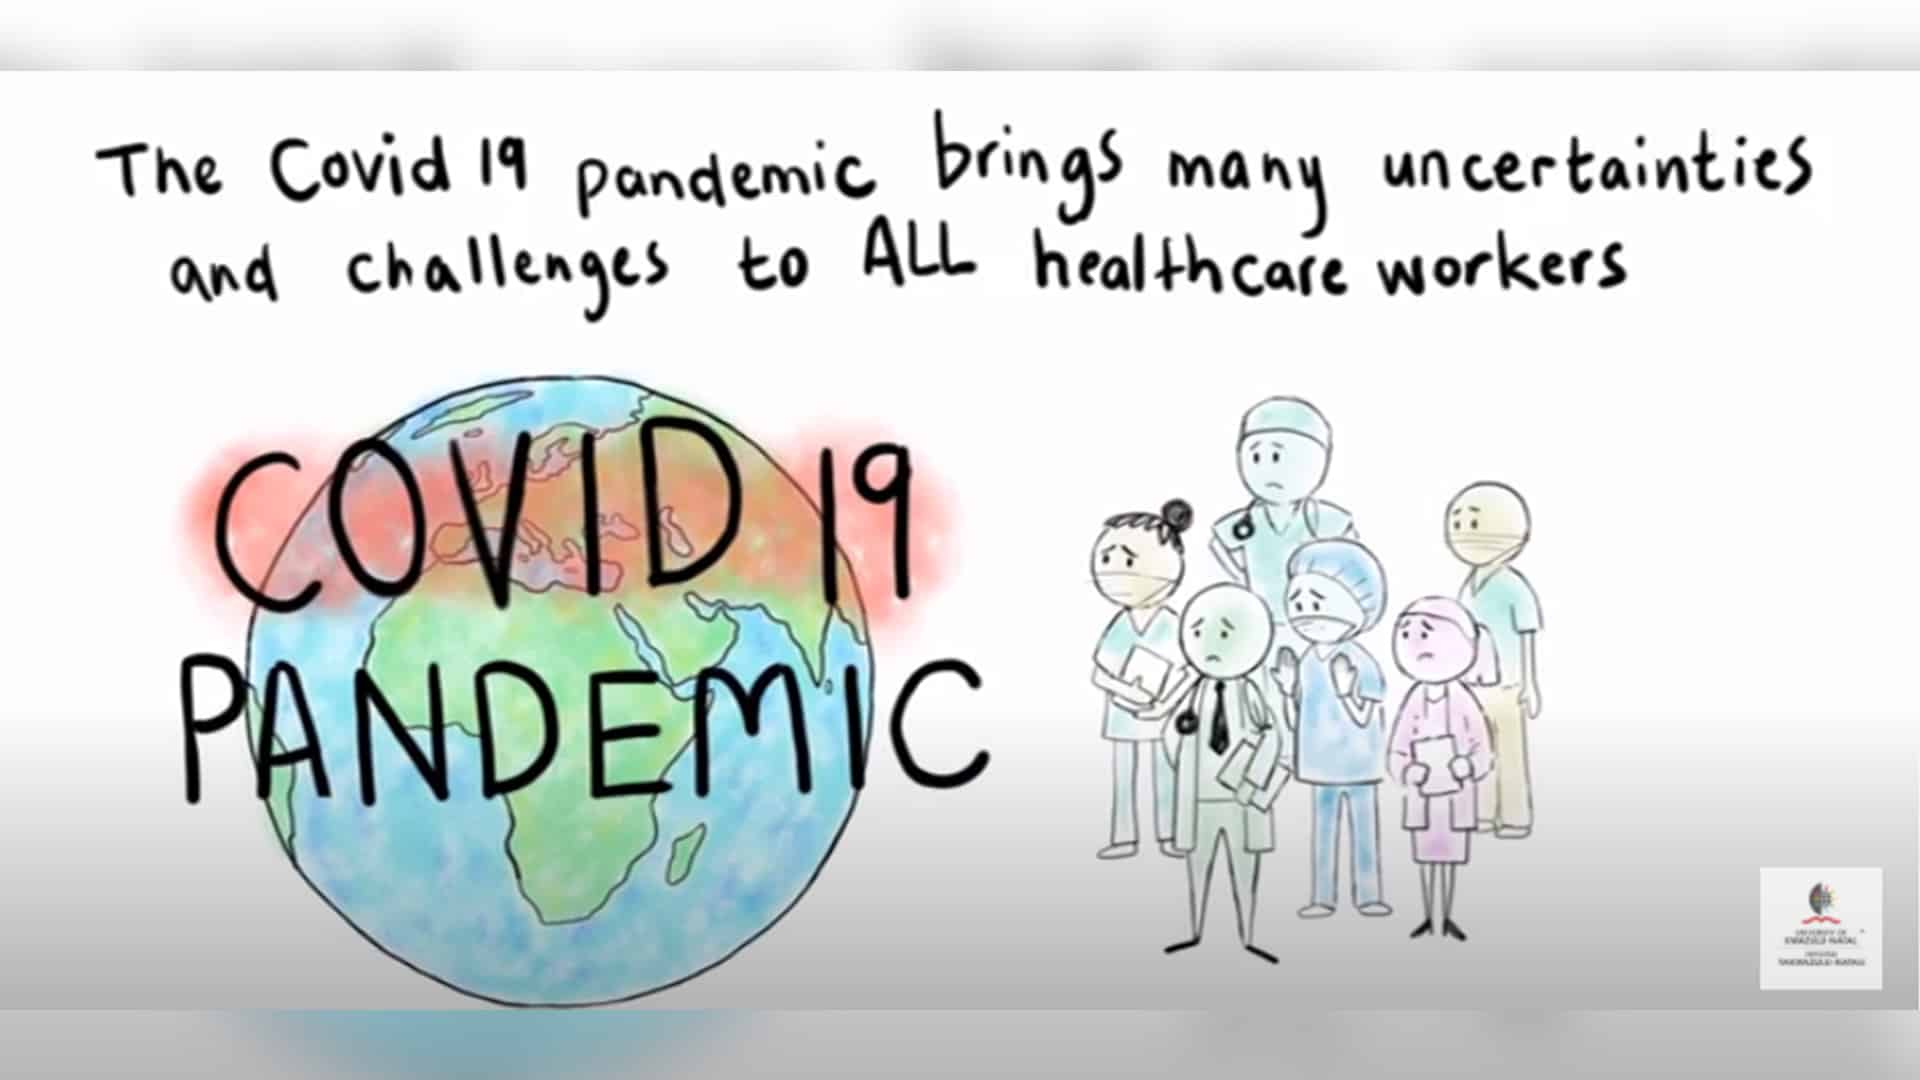 The video addresses the anxieties health care workers may face in the wake of COVID-19.